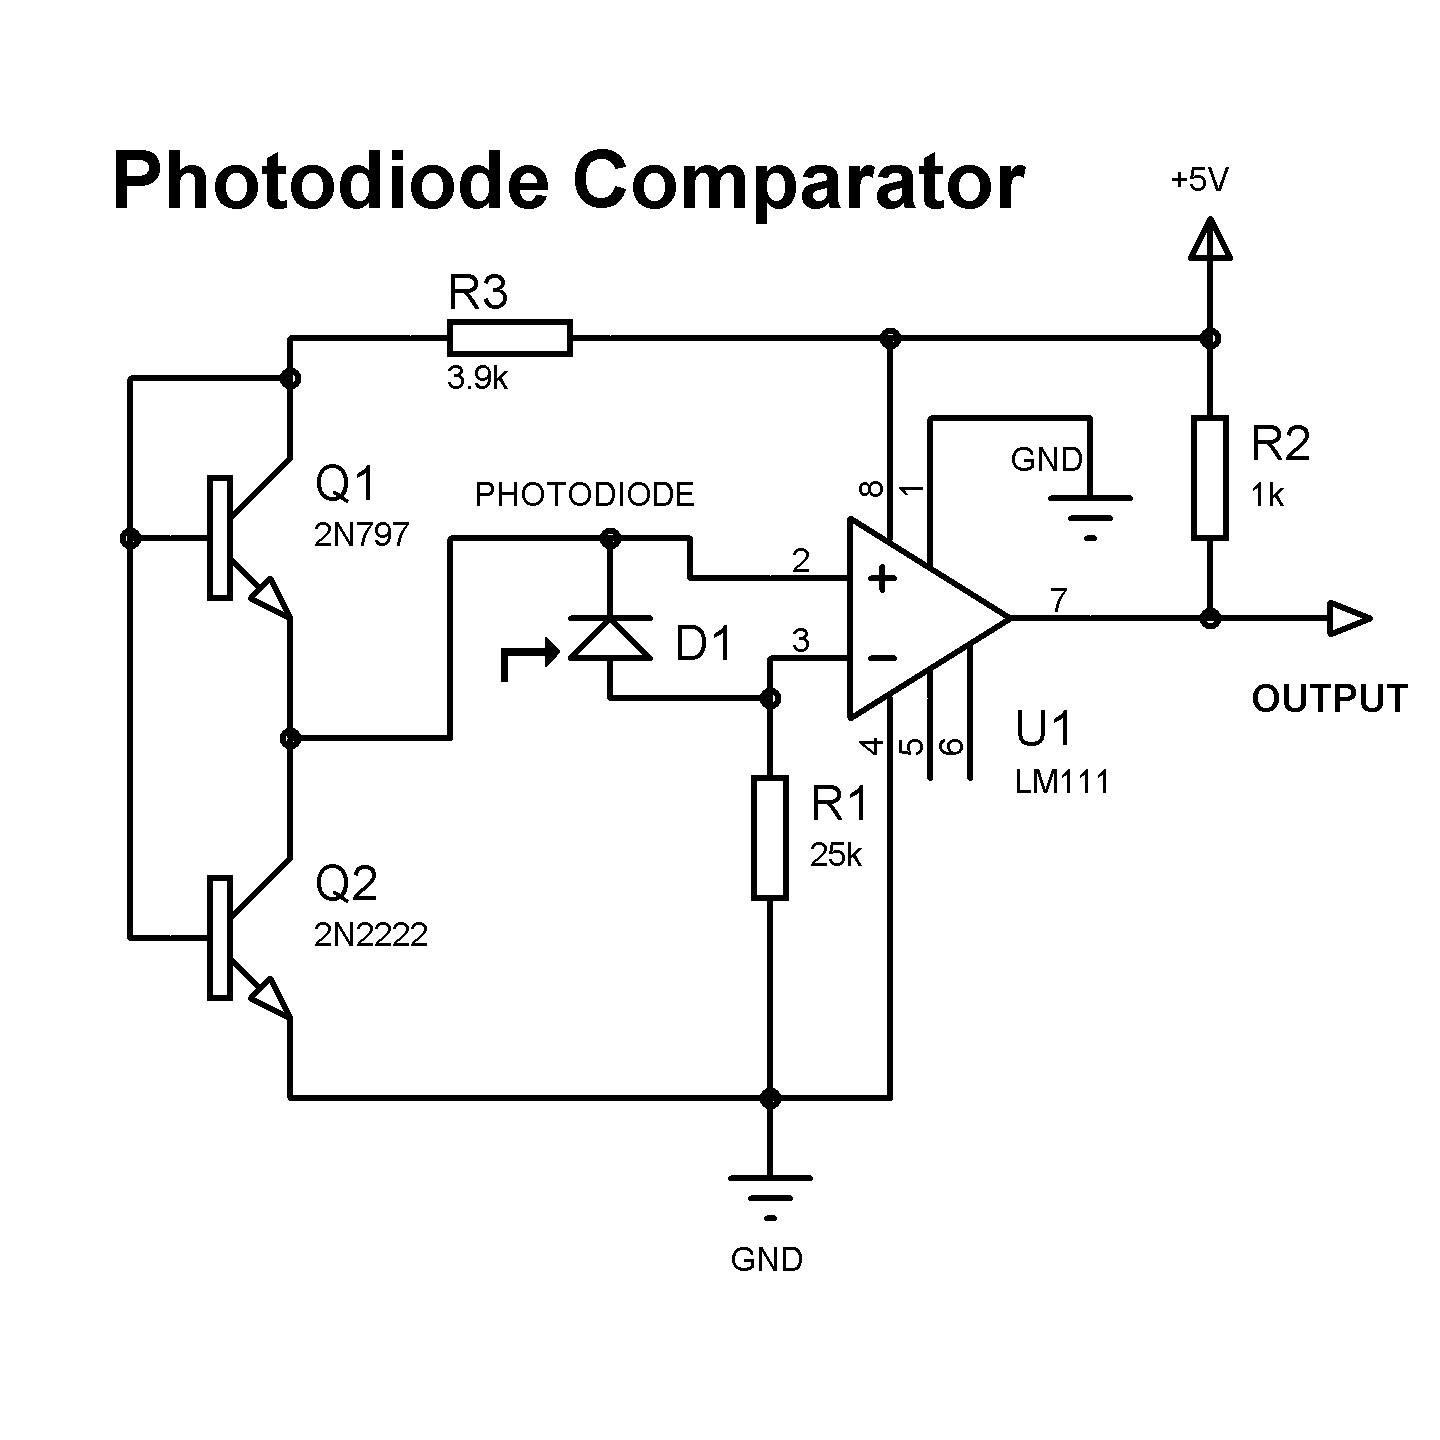 how to interface photo diode with microcontroller